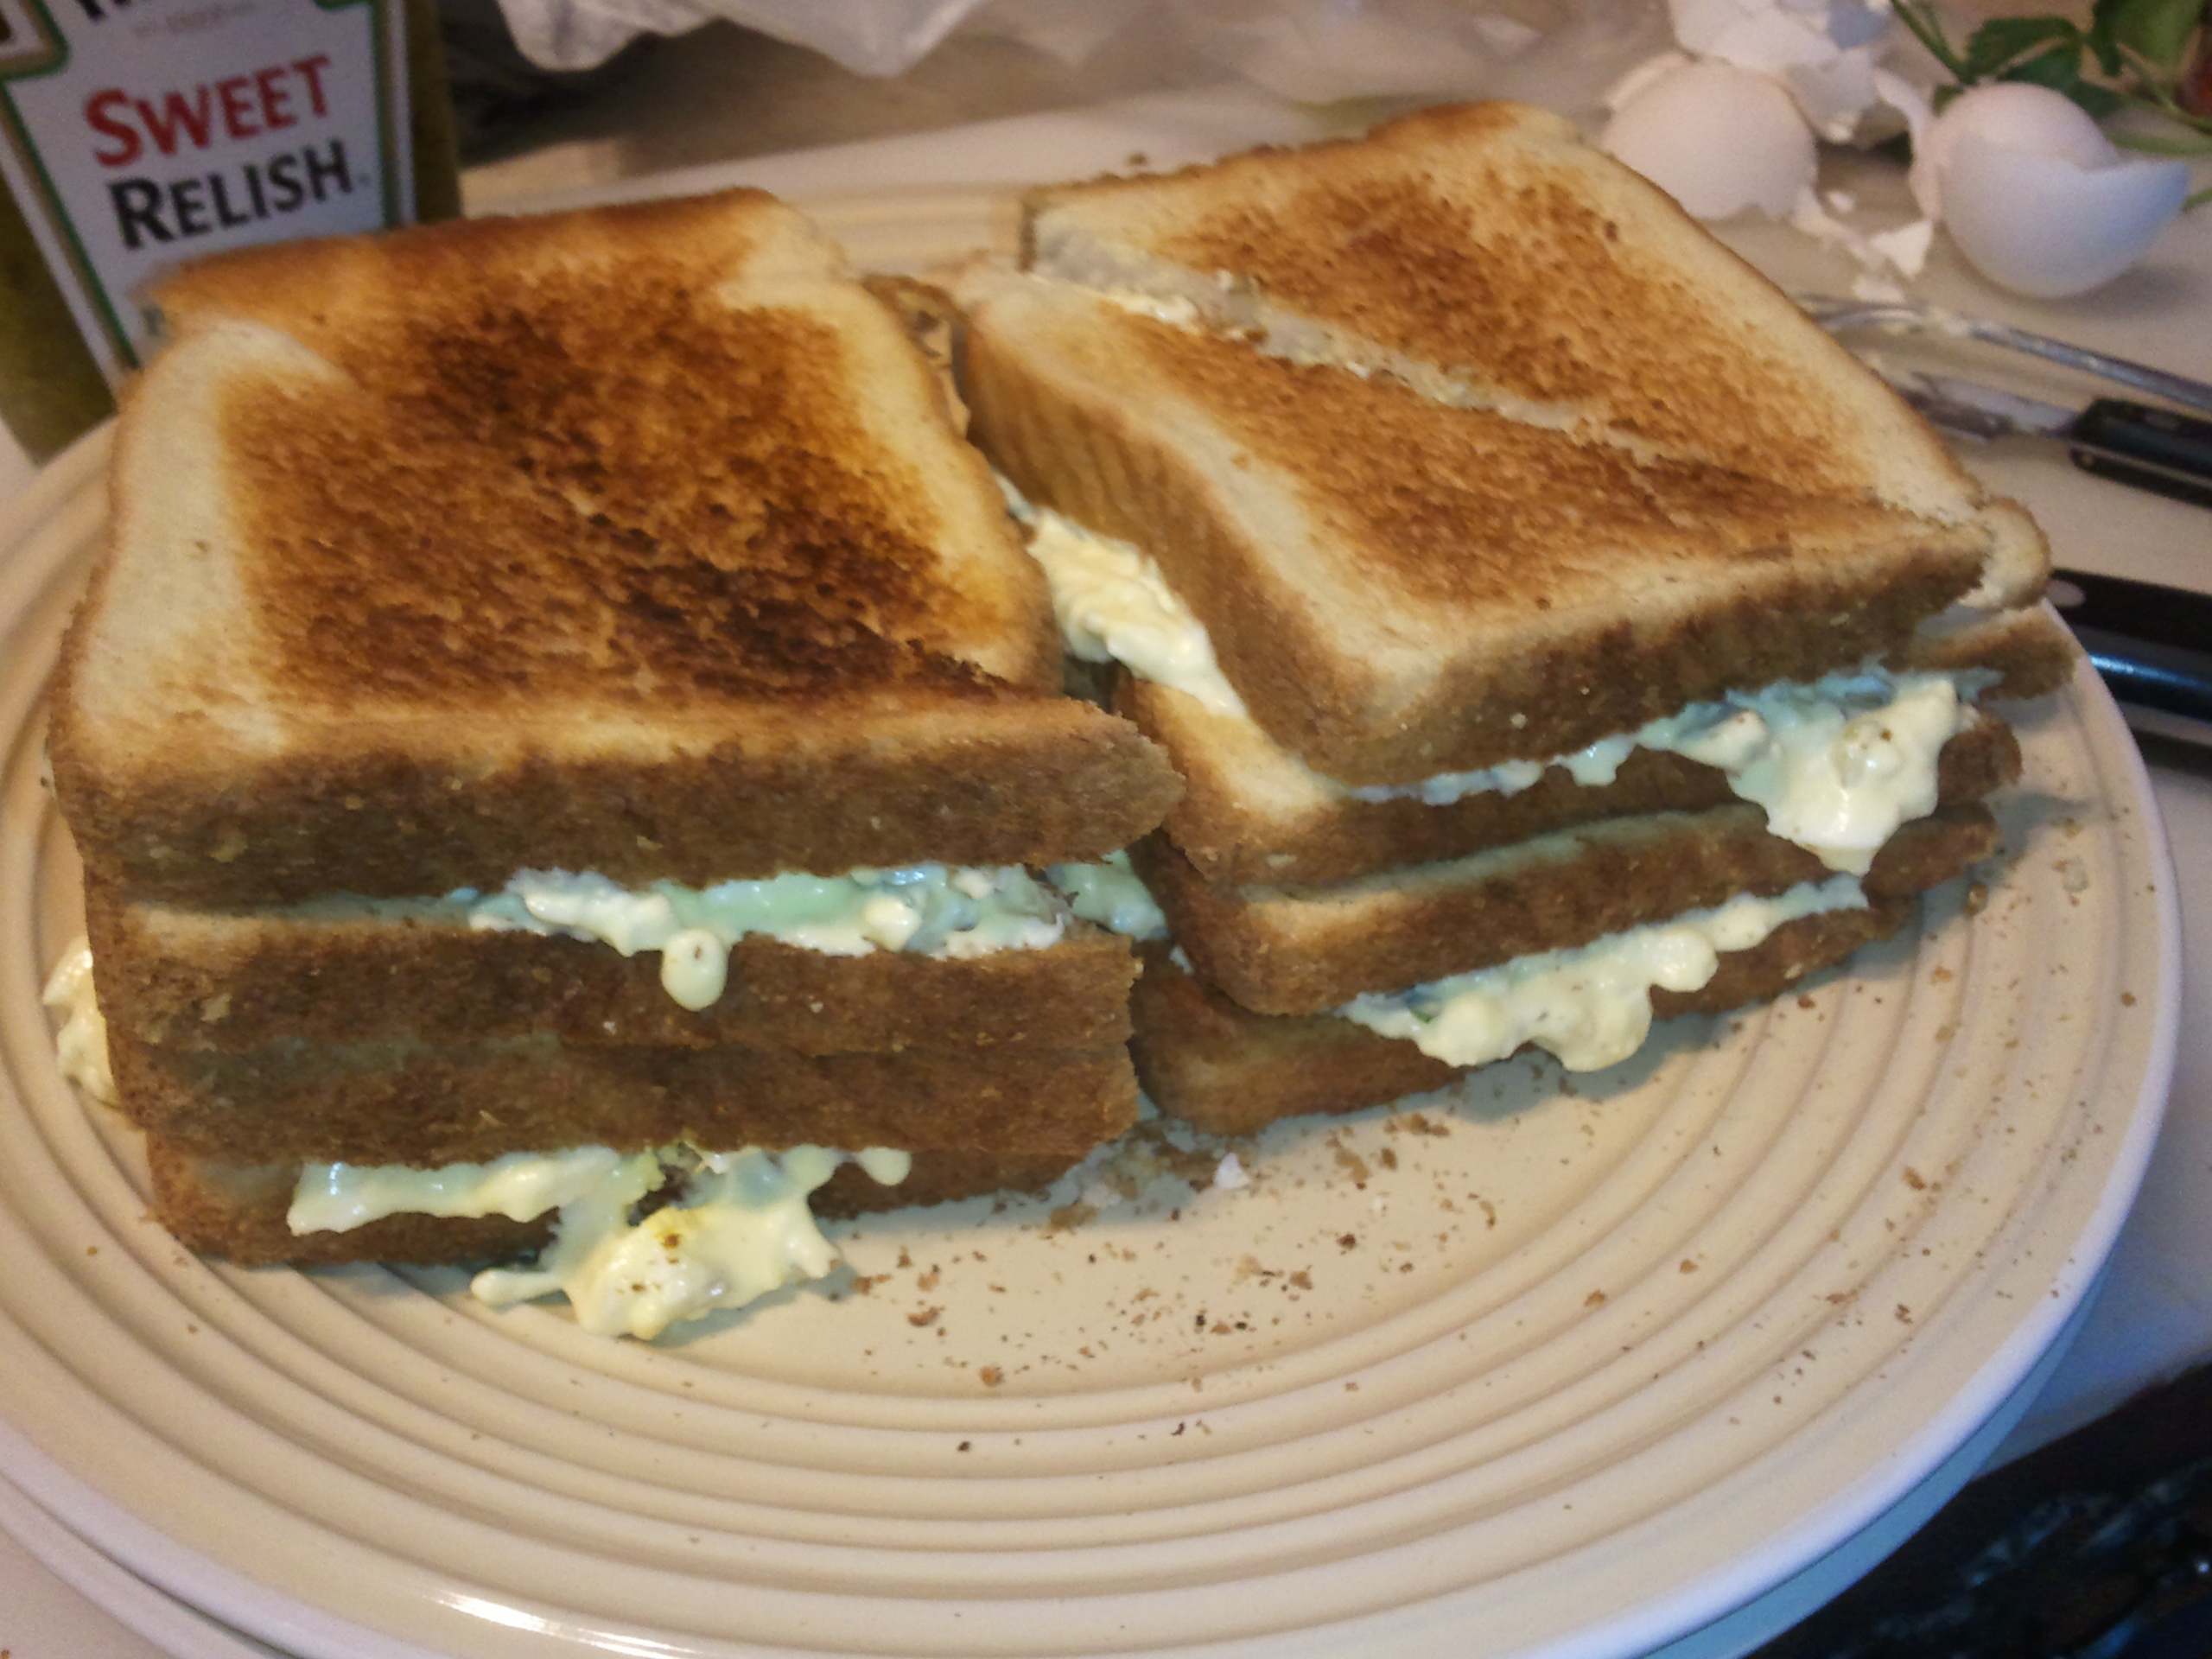 Big pile o' egg salad sammiches